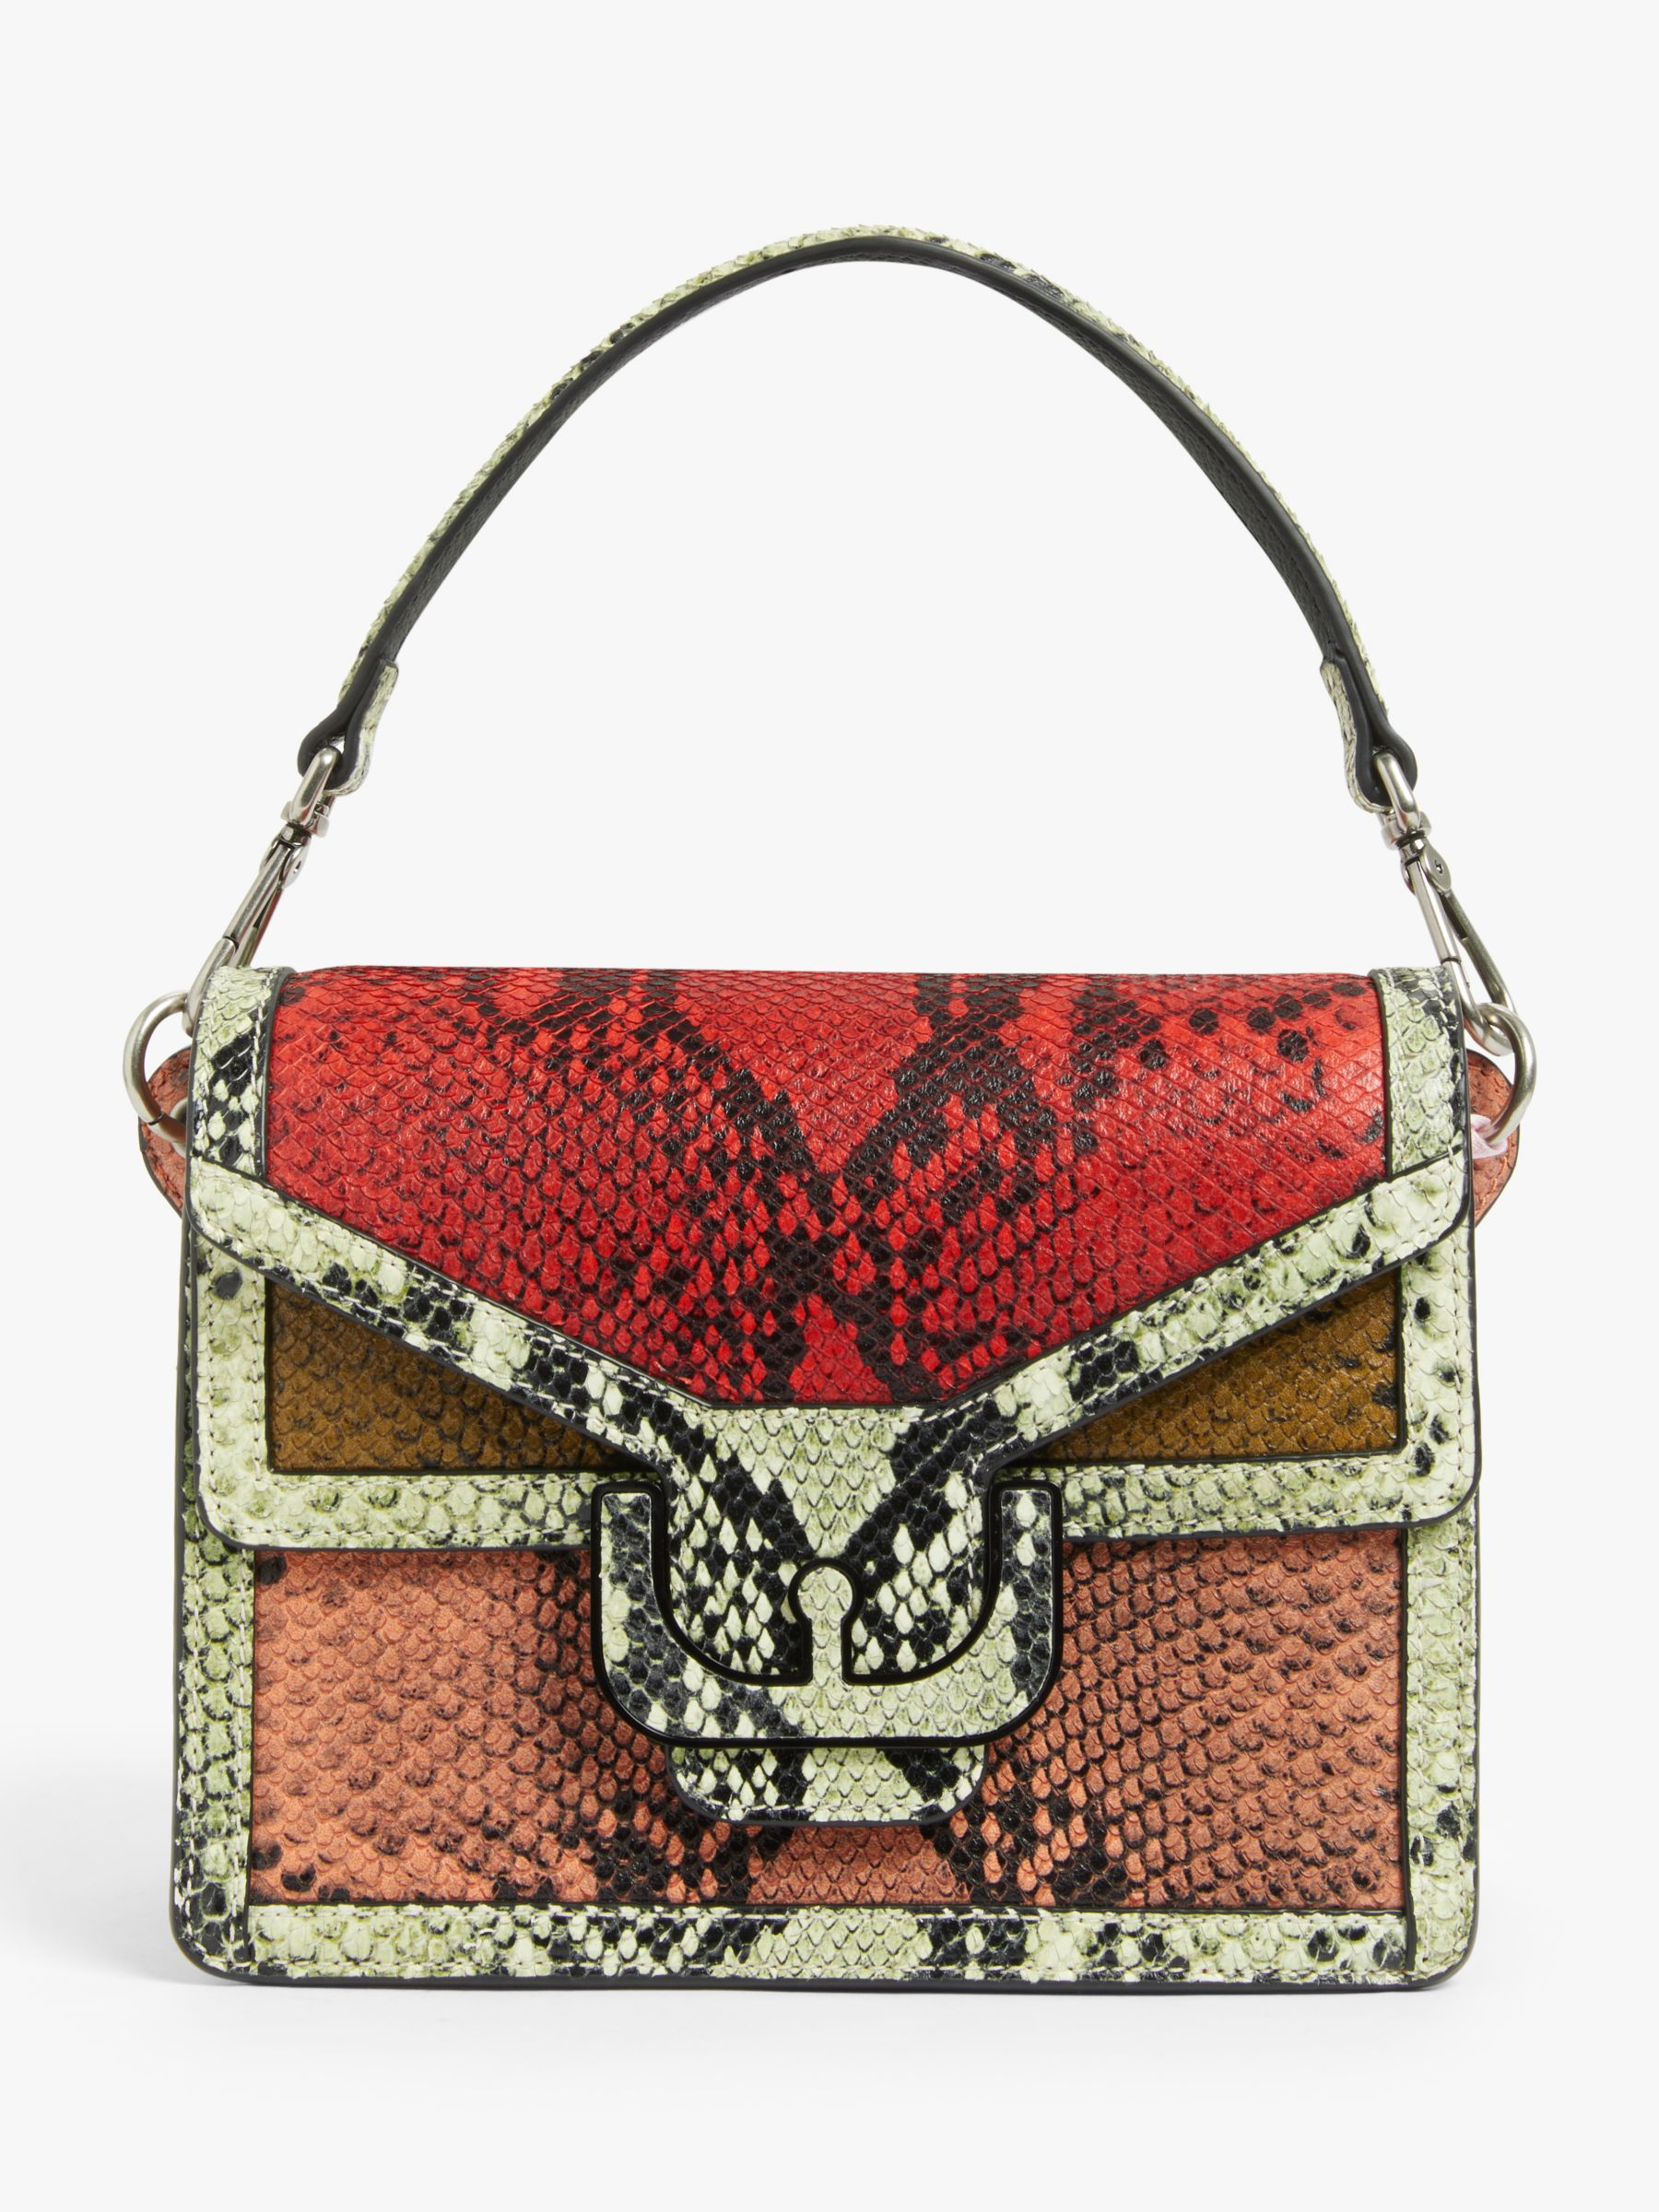 Coccinelle Coccinelle Ambrine Python Leather Shoulder Bag, Red